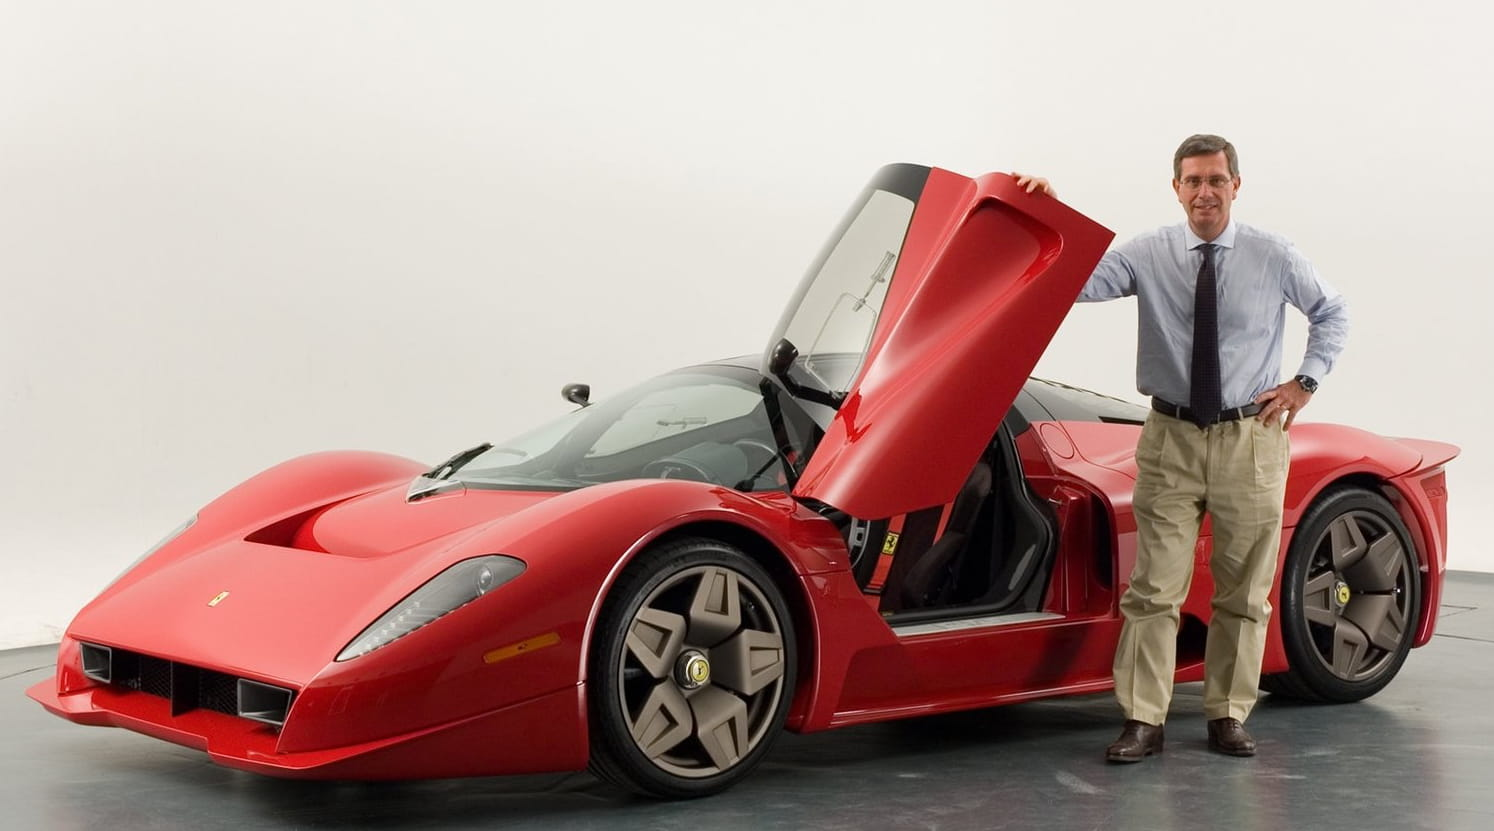 Andrea Pininfarina and the P 4/5